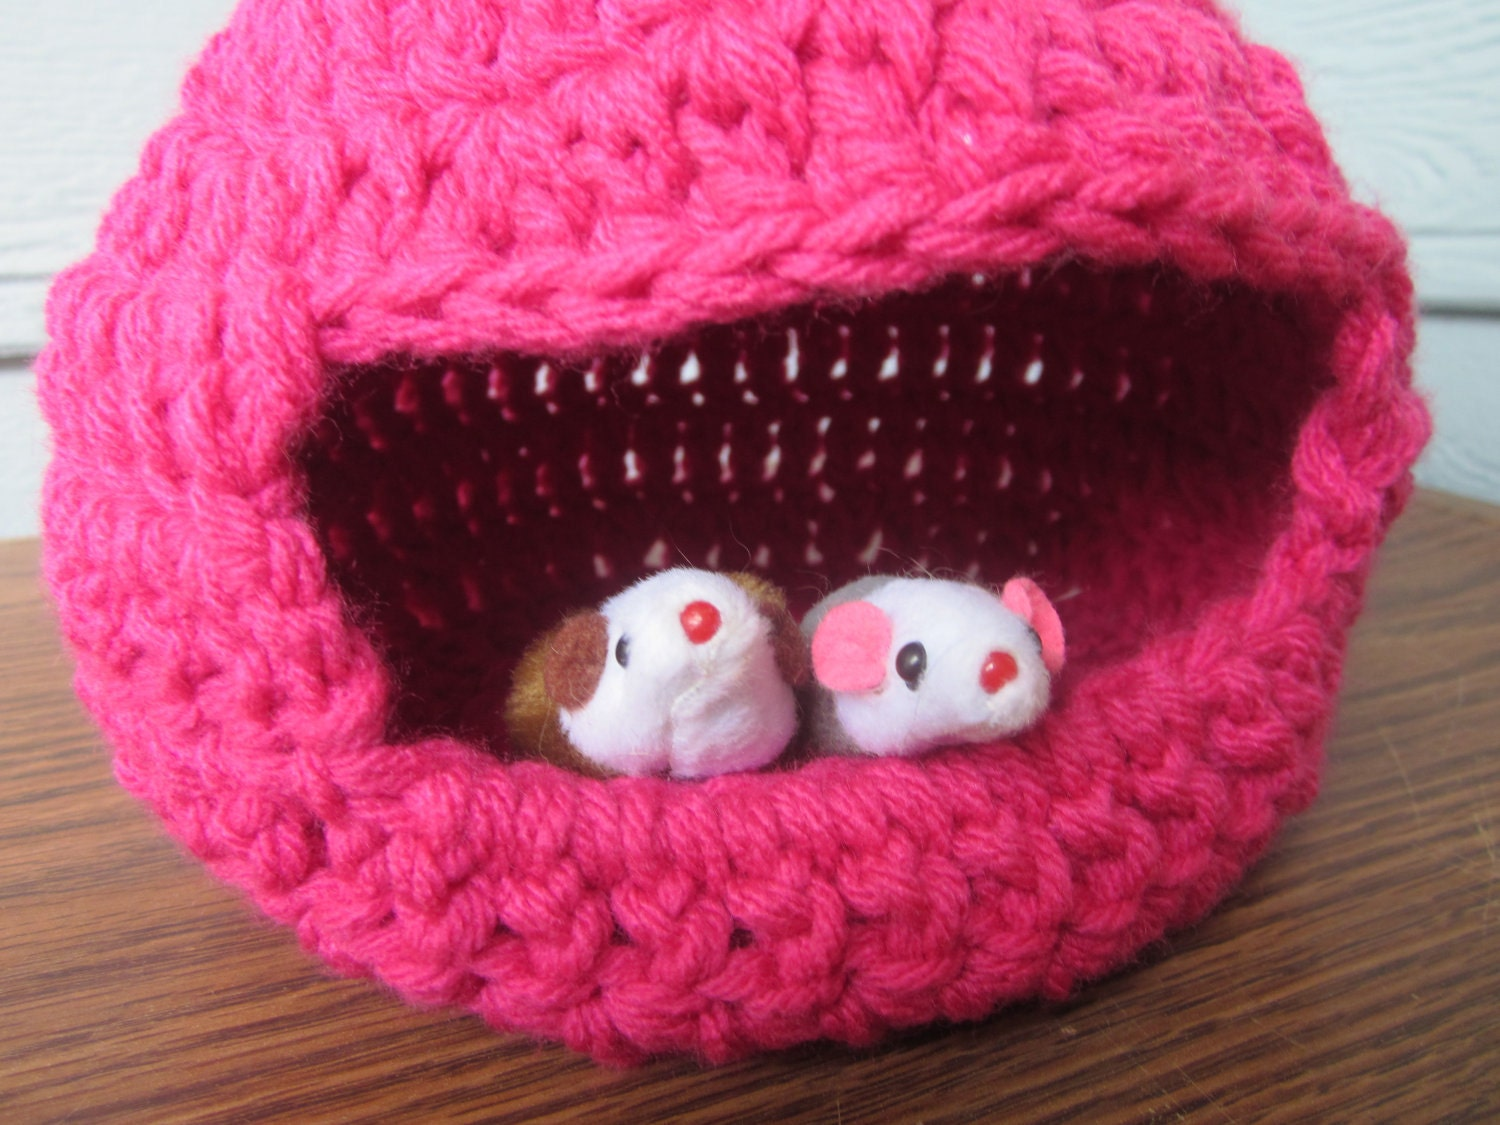 Crochet Patterns Pet Beds : CROCHET PET BED How To Crochet